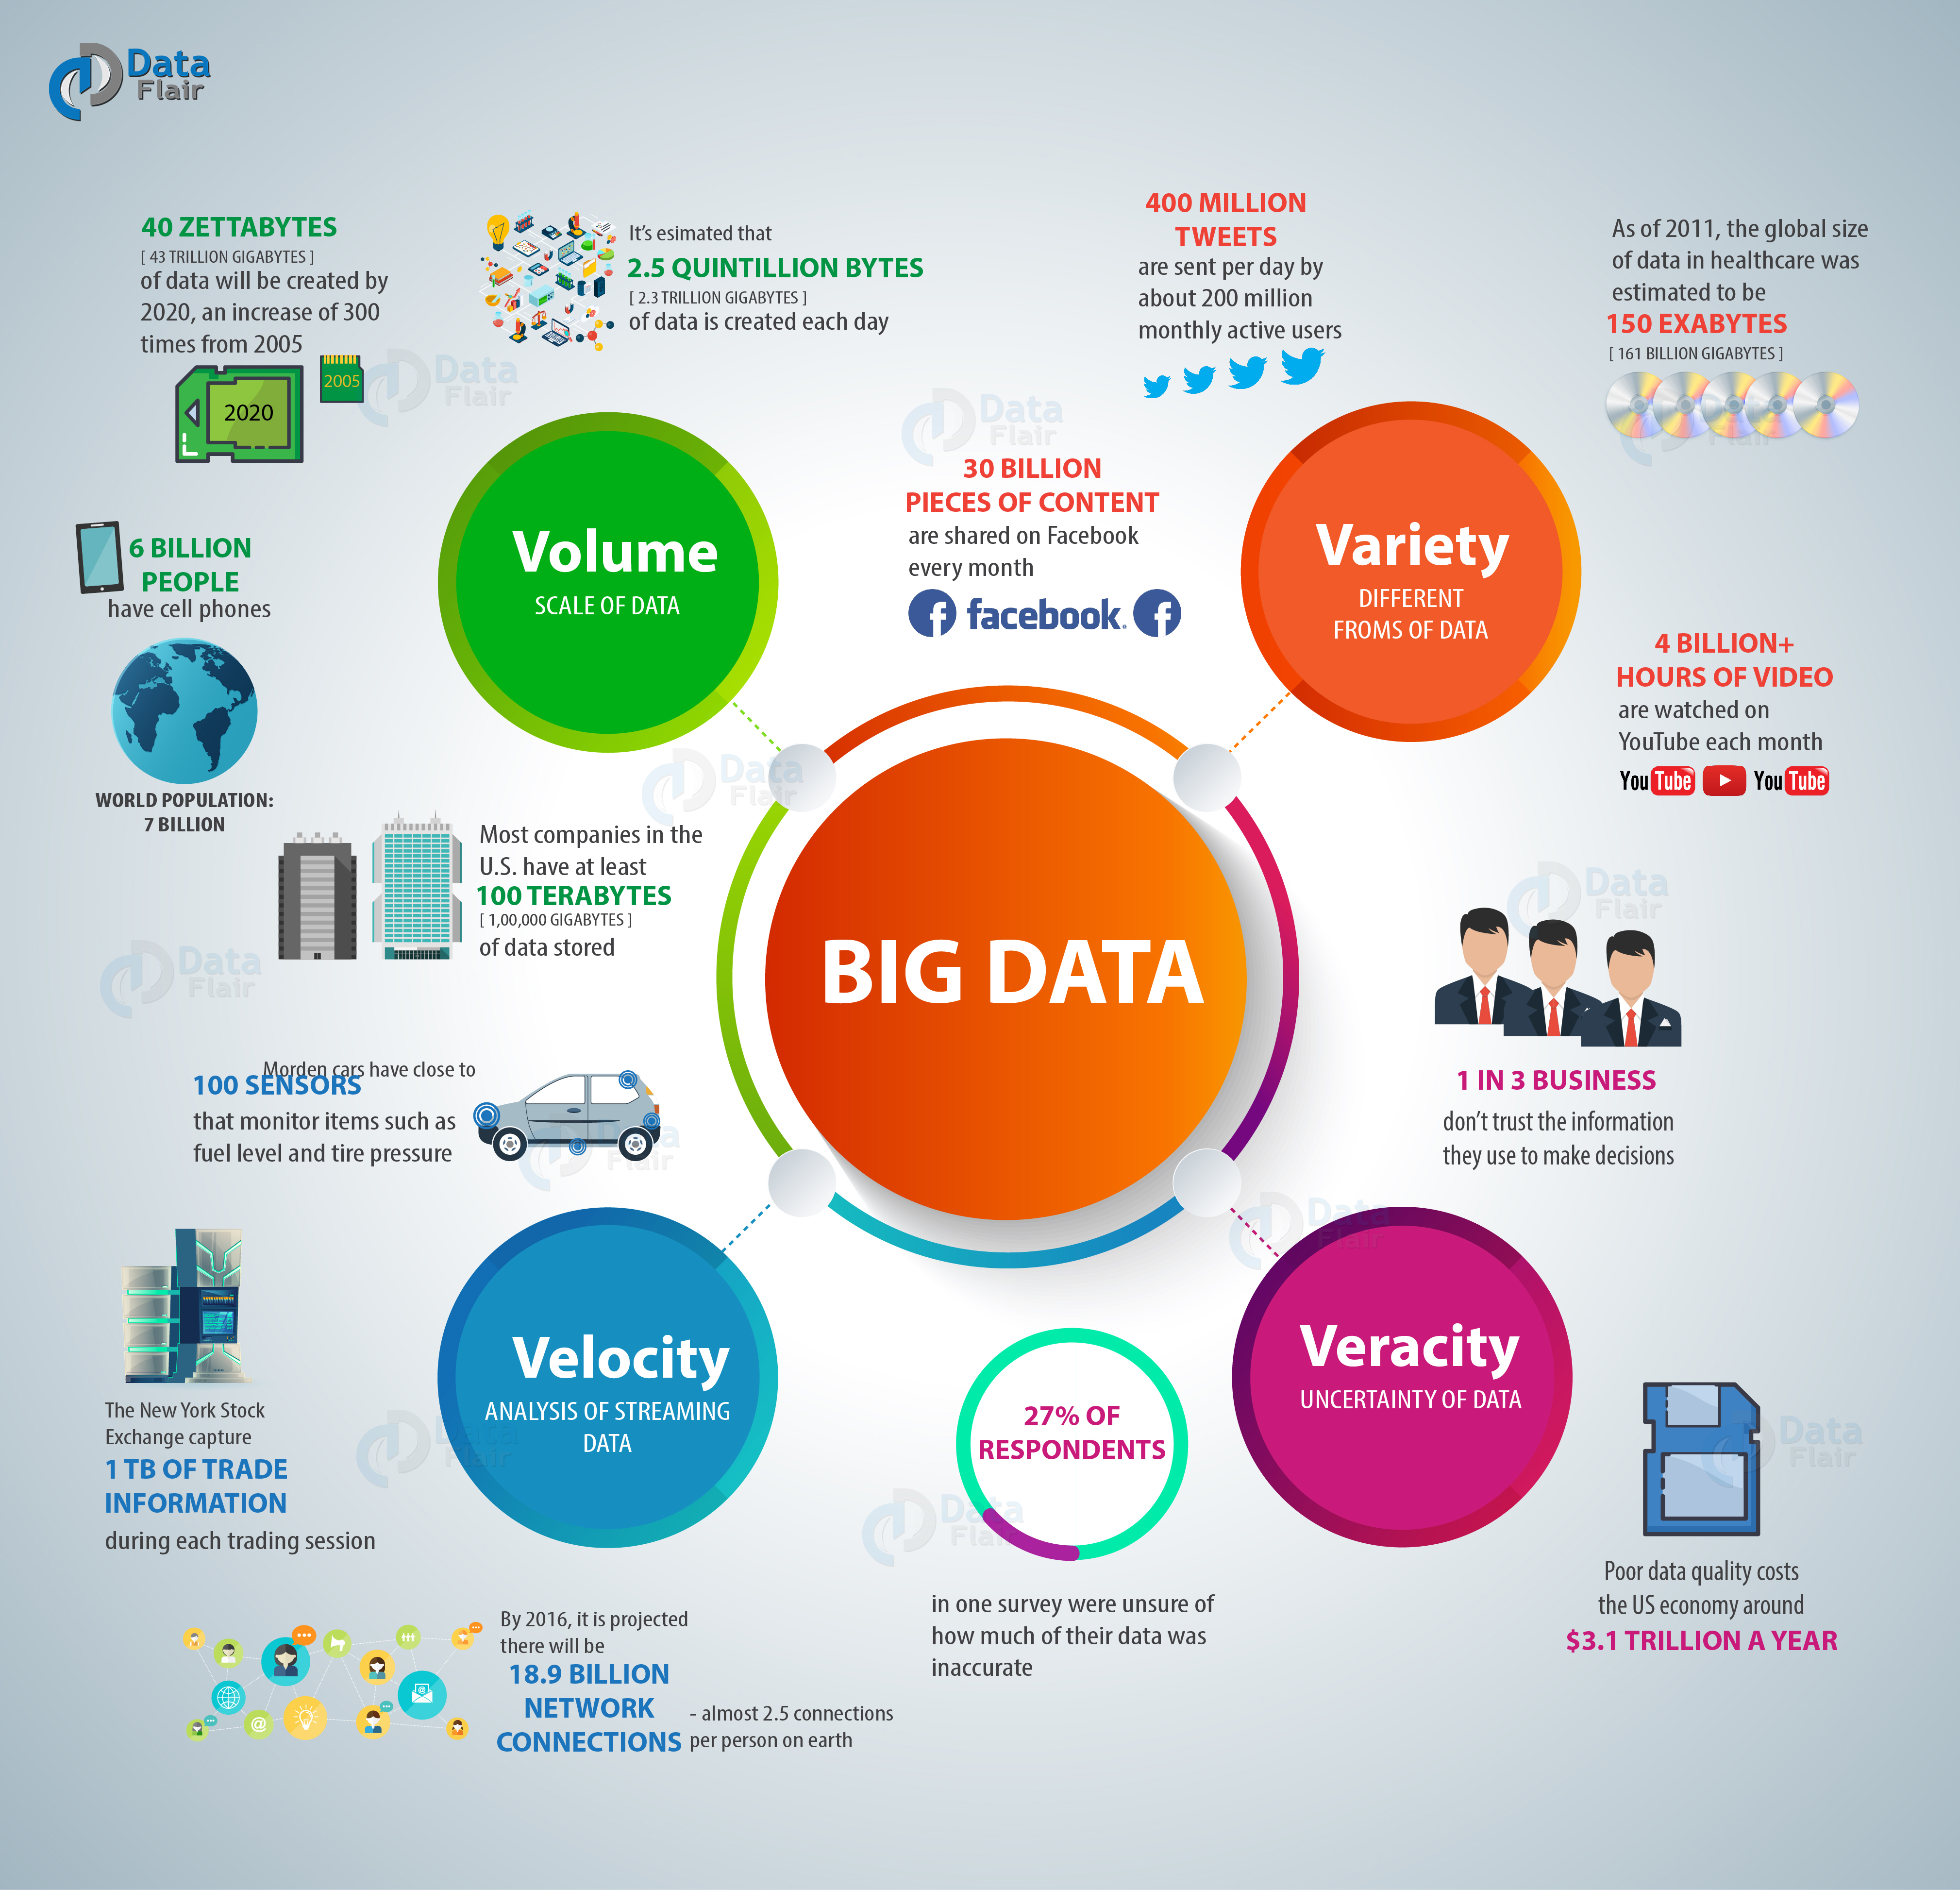 Big Data and 4 Vs